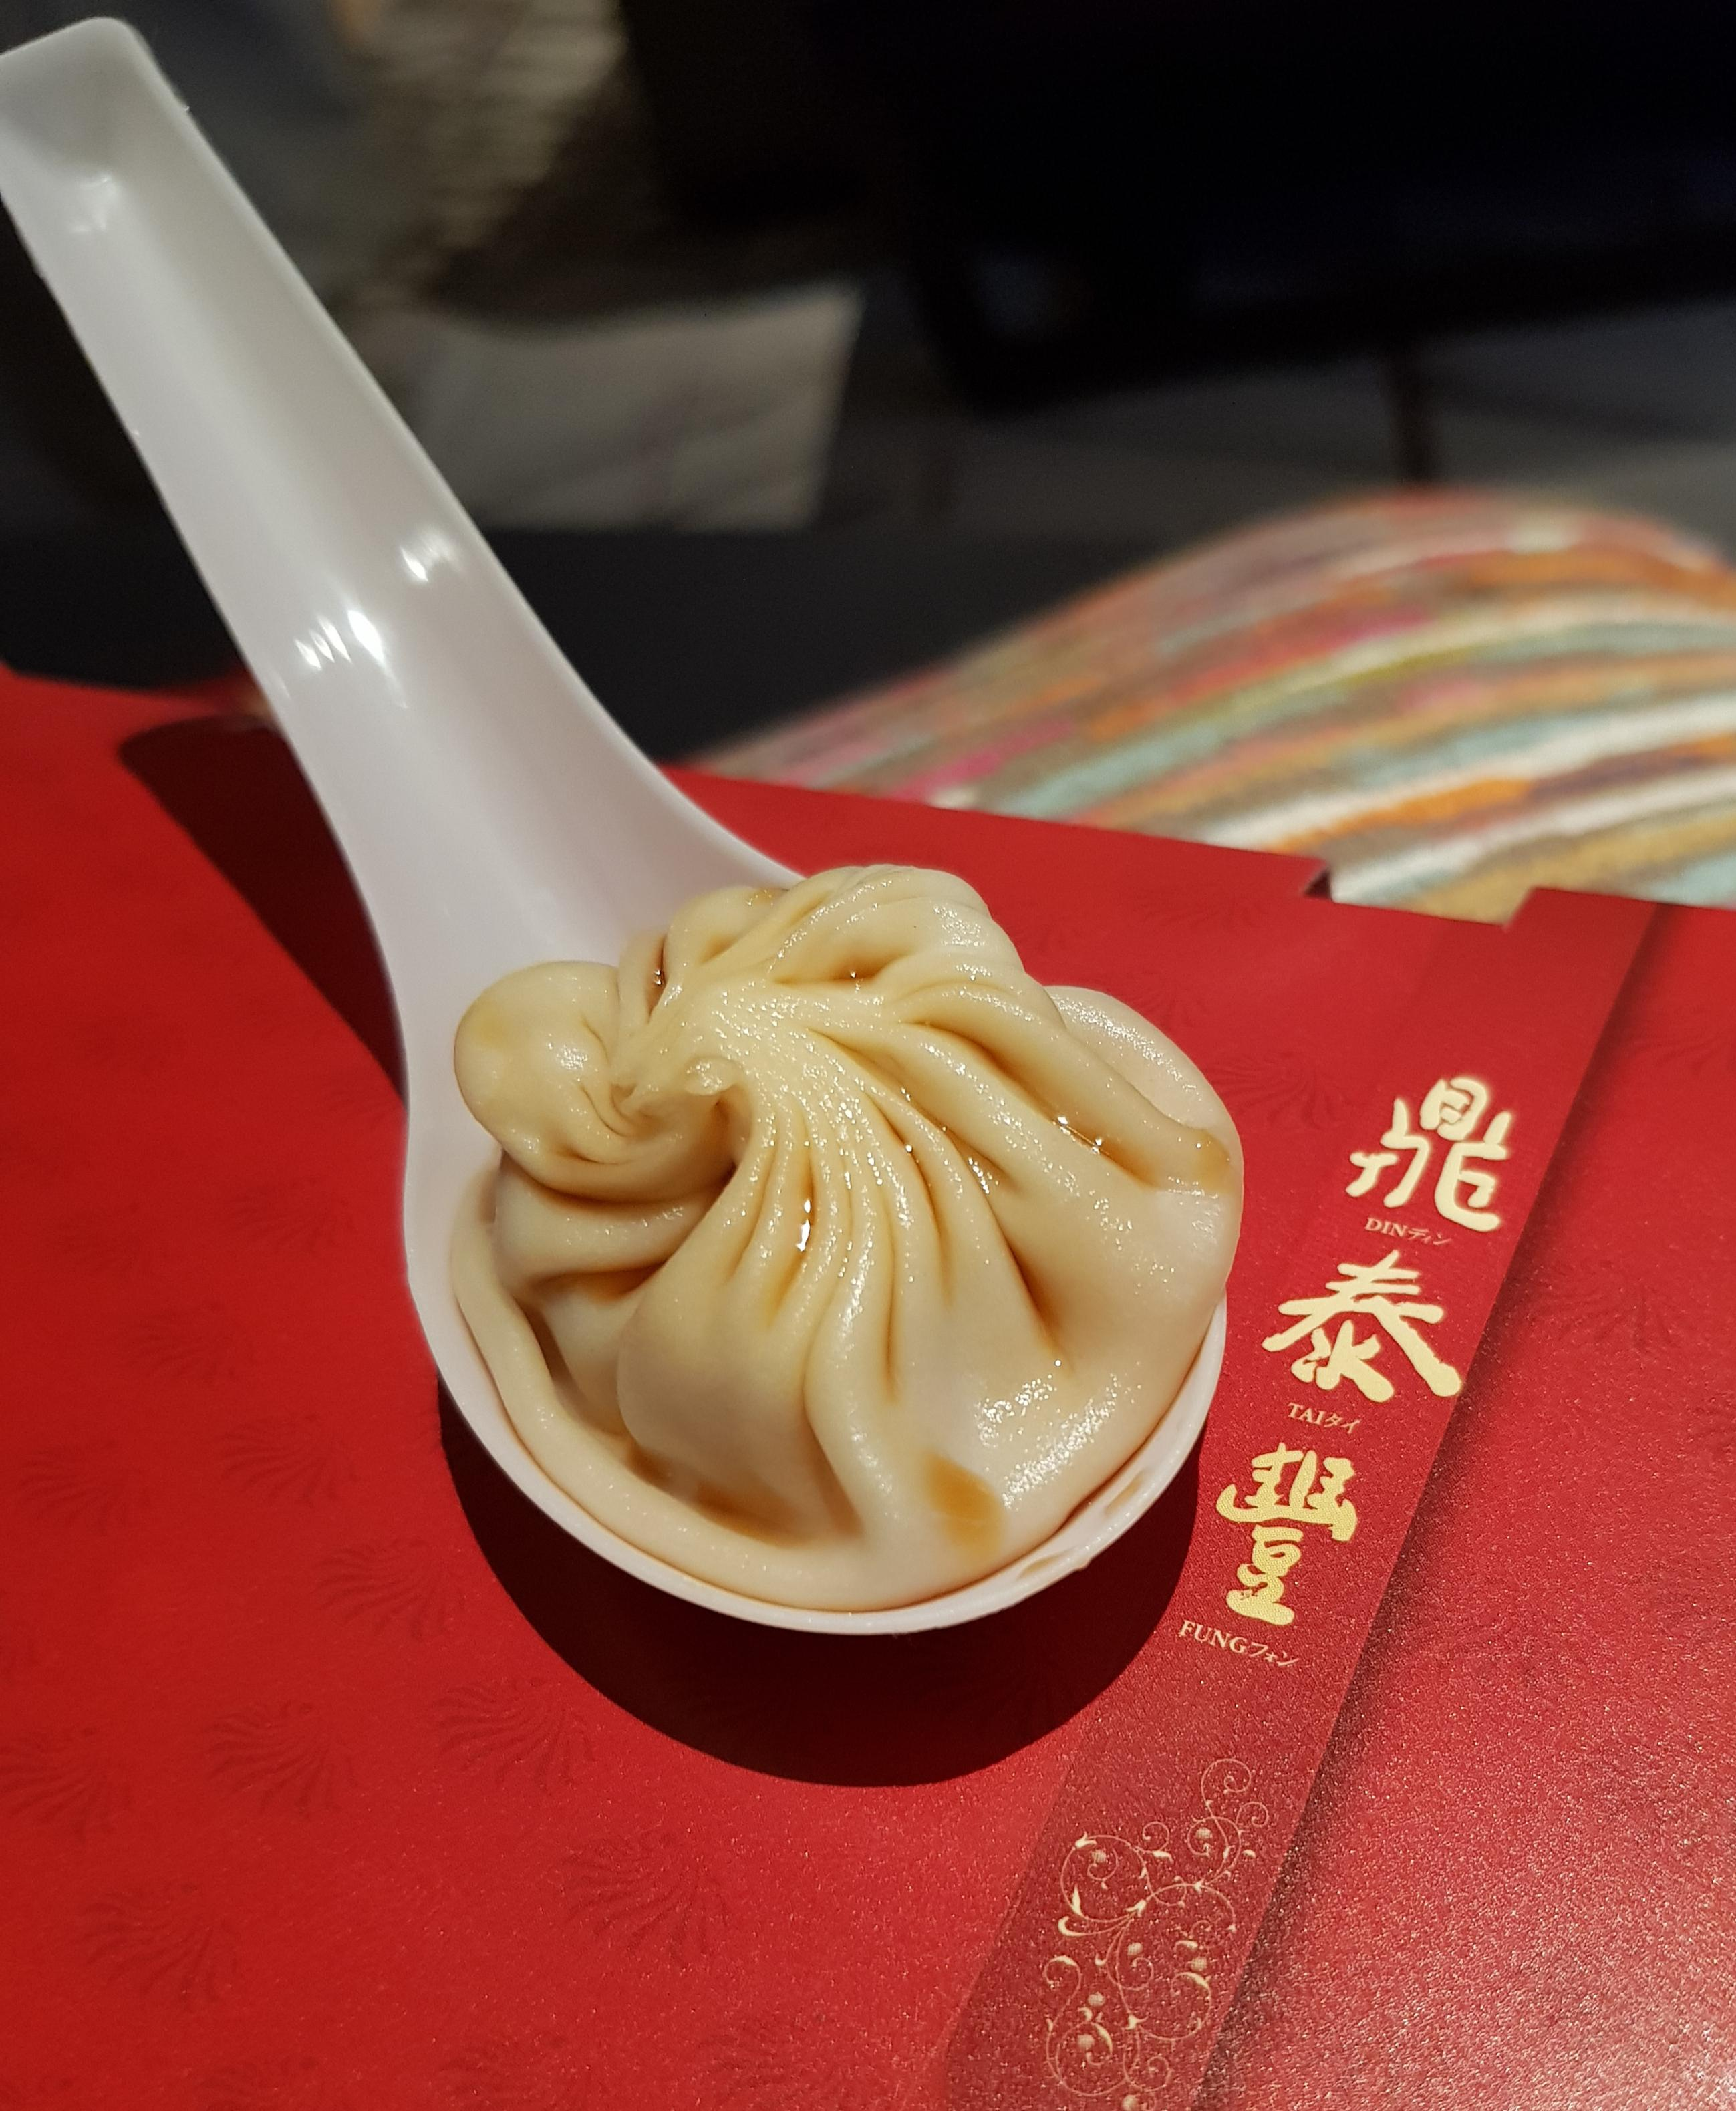 Take away Xiao long bao (soup dumplings)